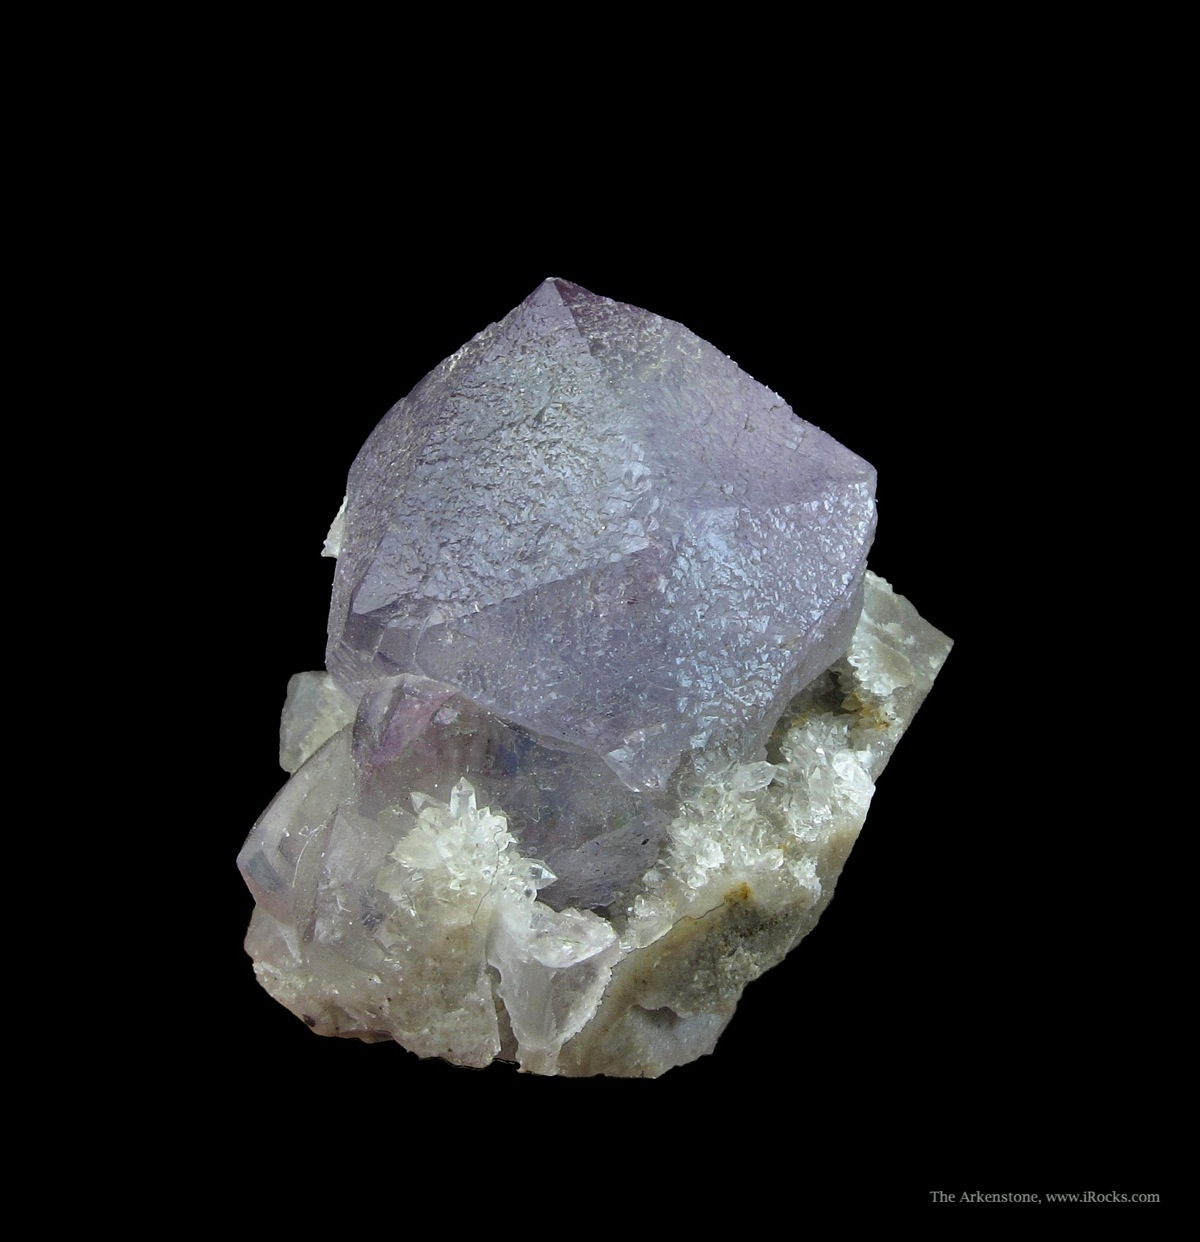 The Hansonburg District produced attractive intriguing Fluorites years